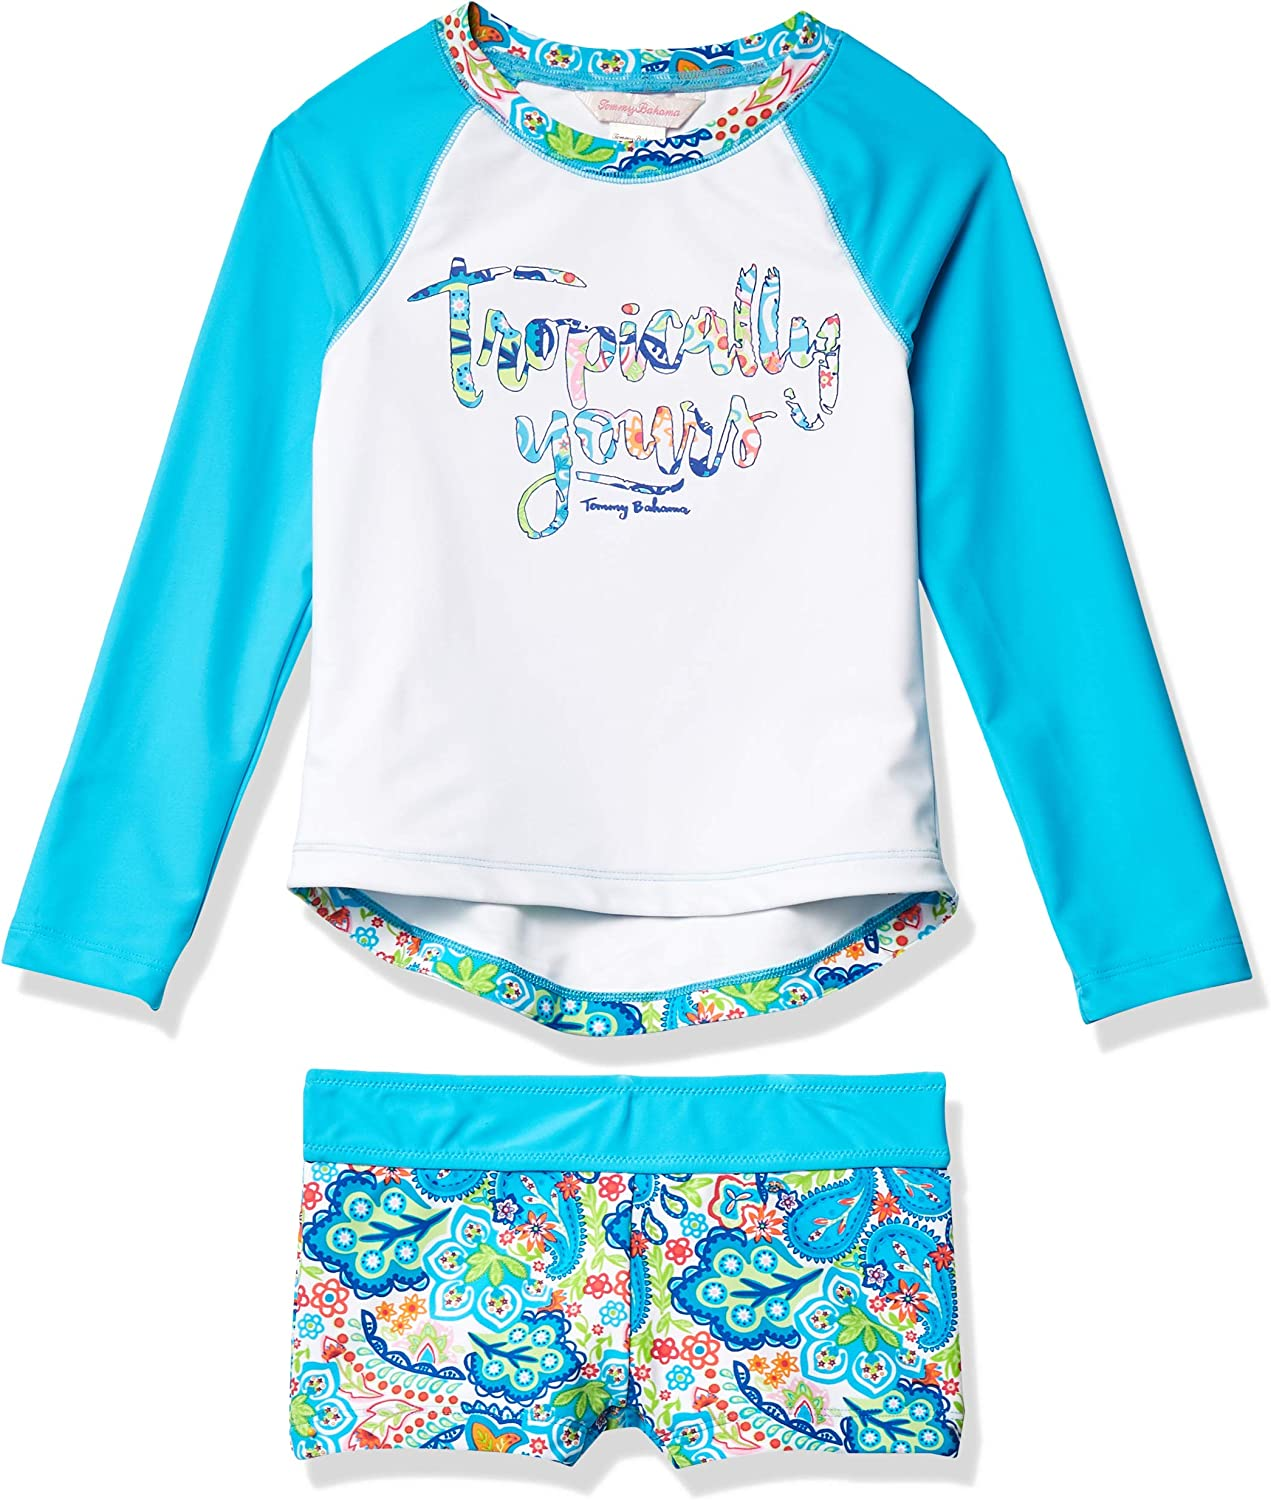 Tommy Bahama Girls Long Sleeve 2-Piece Rashguard Swimsuit Bathing Suit